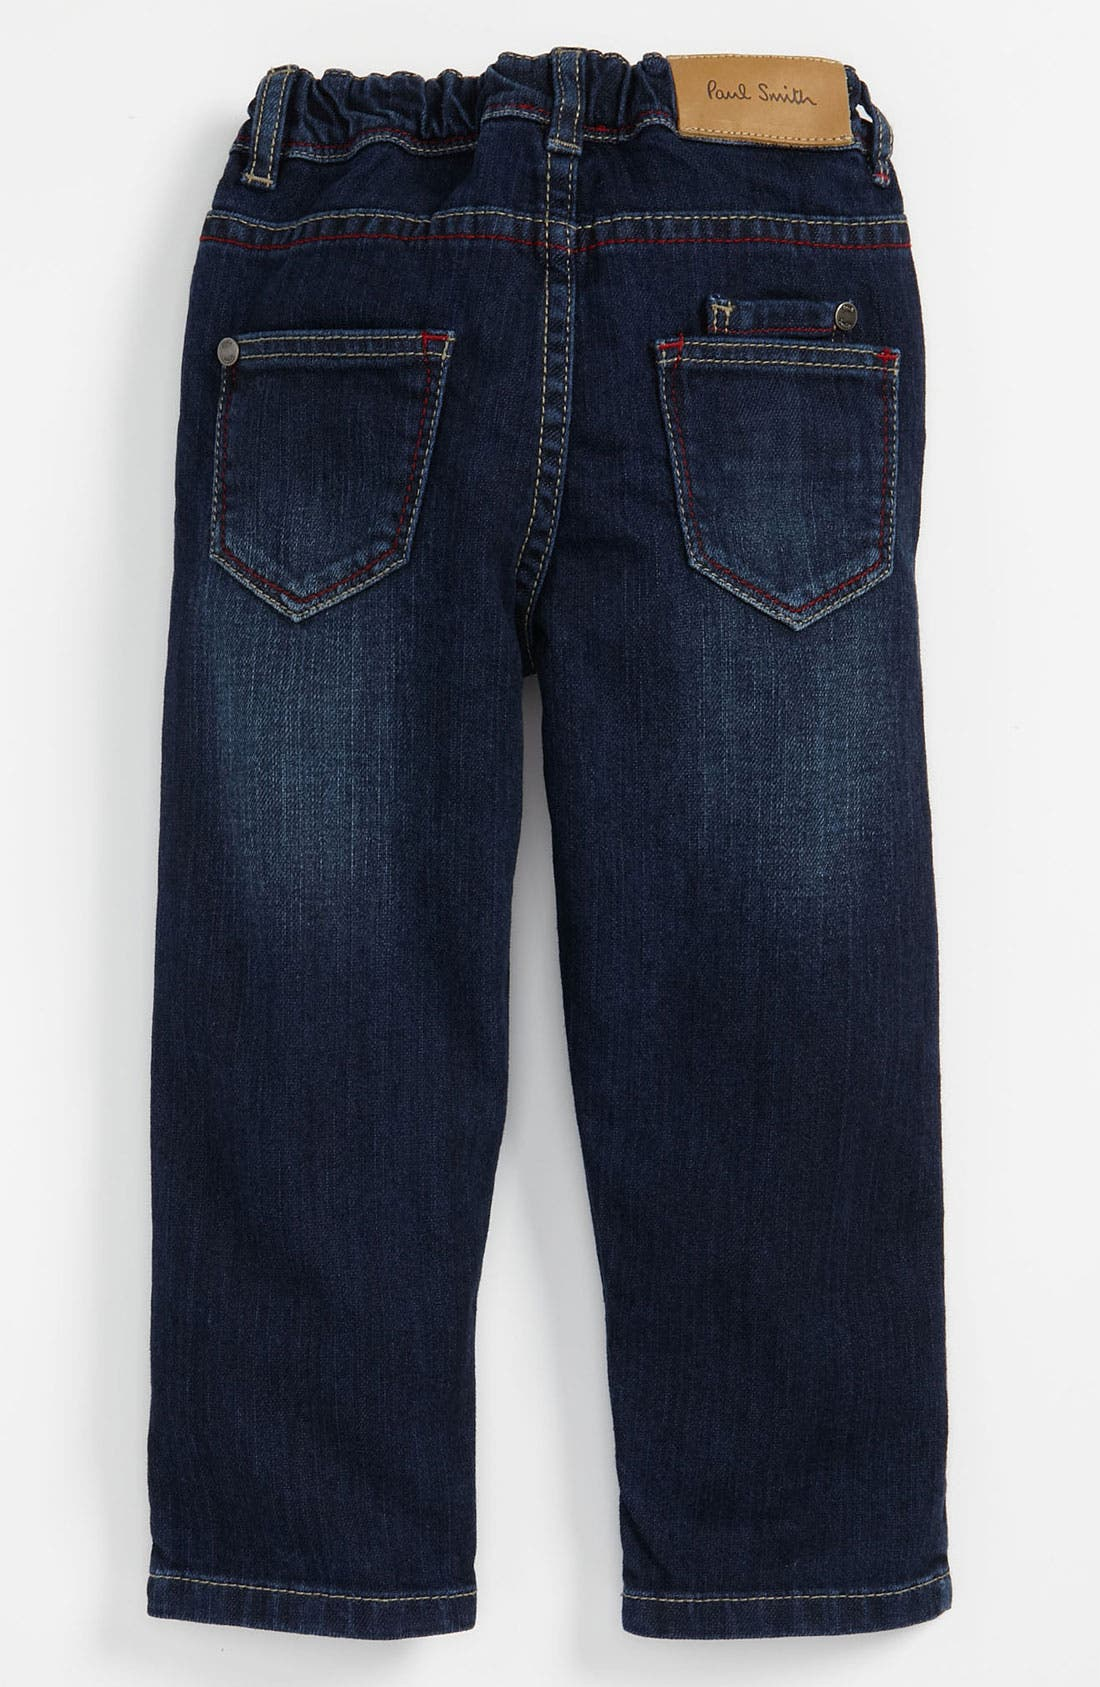 Alternate Image 1 Selected - Paul Smith Junior 'Colby' Pants (Toddler)